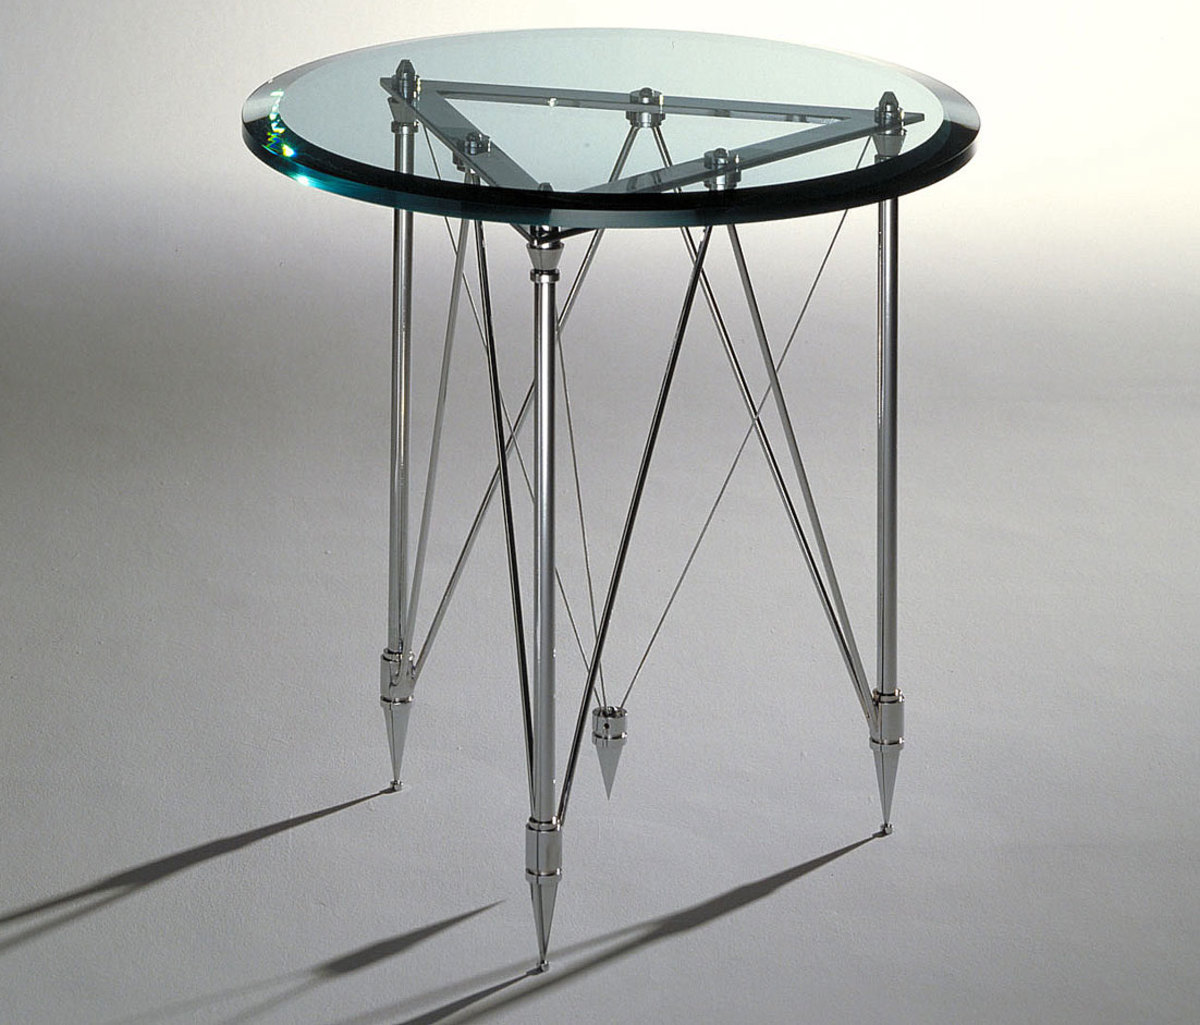 Machined Parts Making Up this Table Base